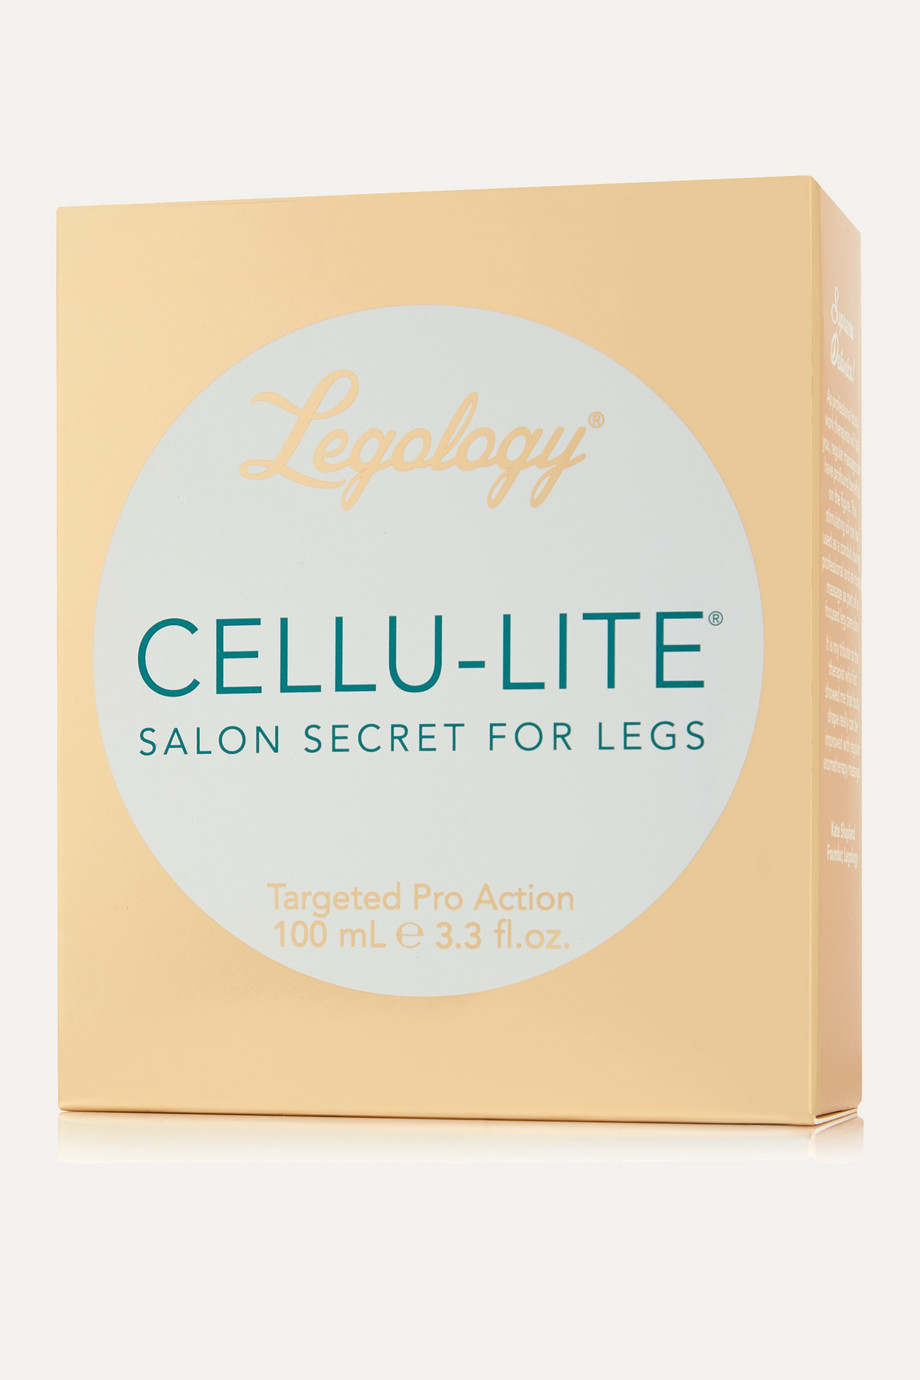 Legology Cellu-Lite Salon Secret for Legs, 100ml